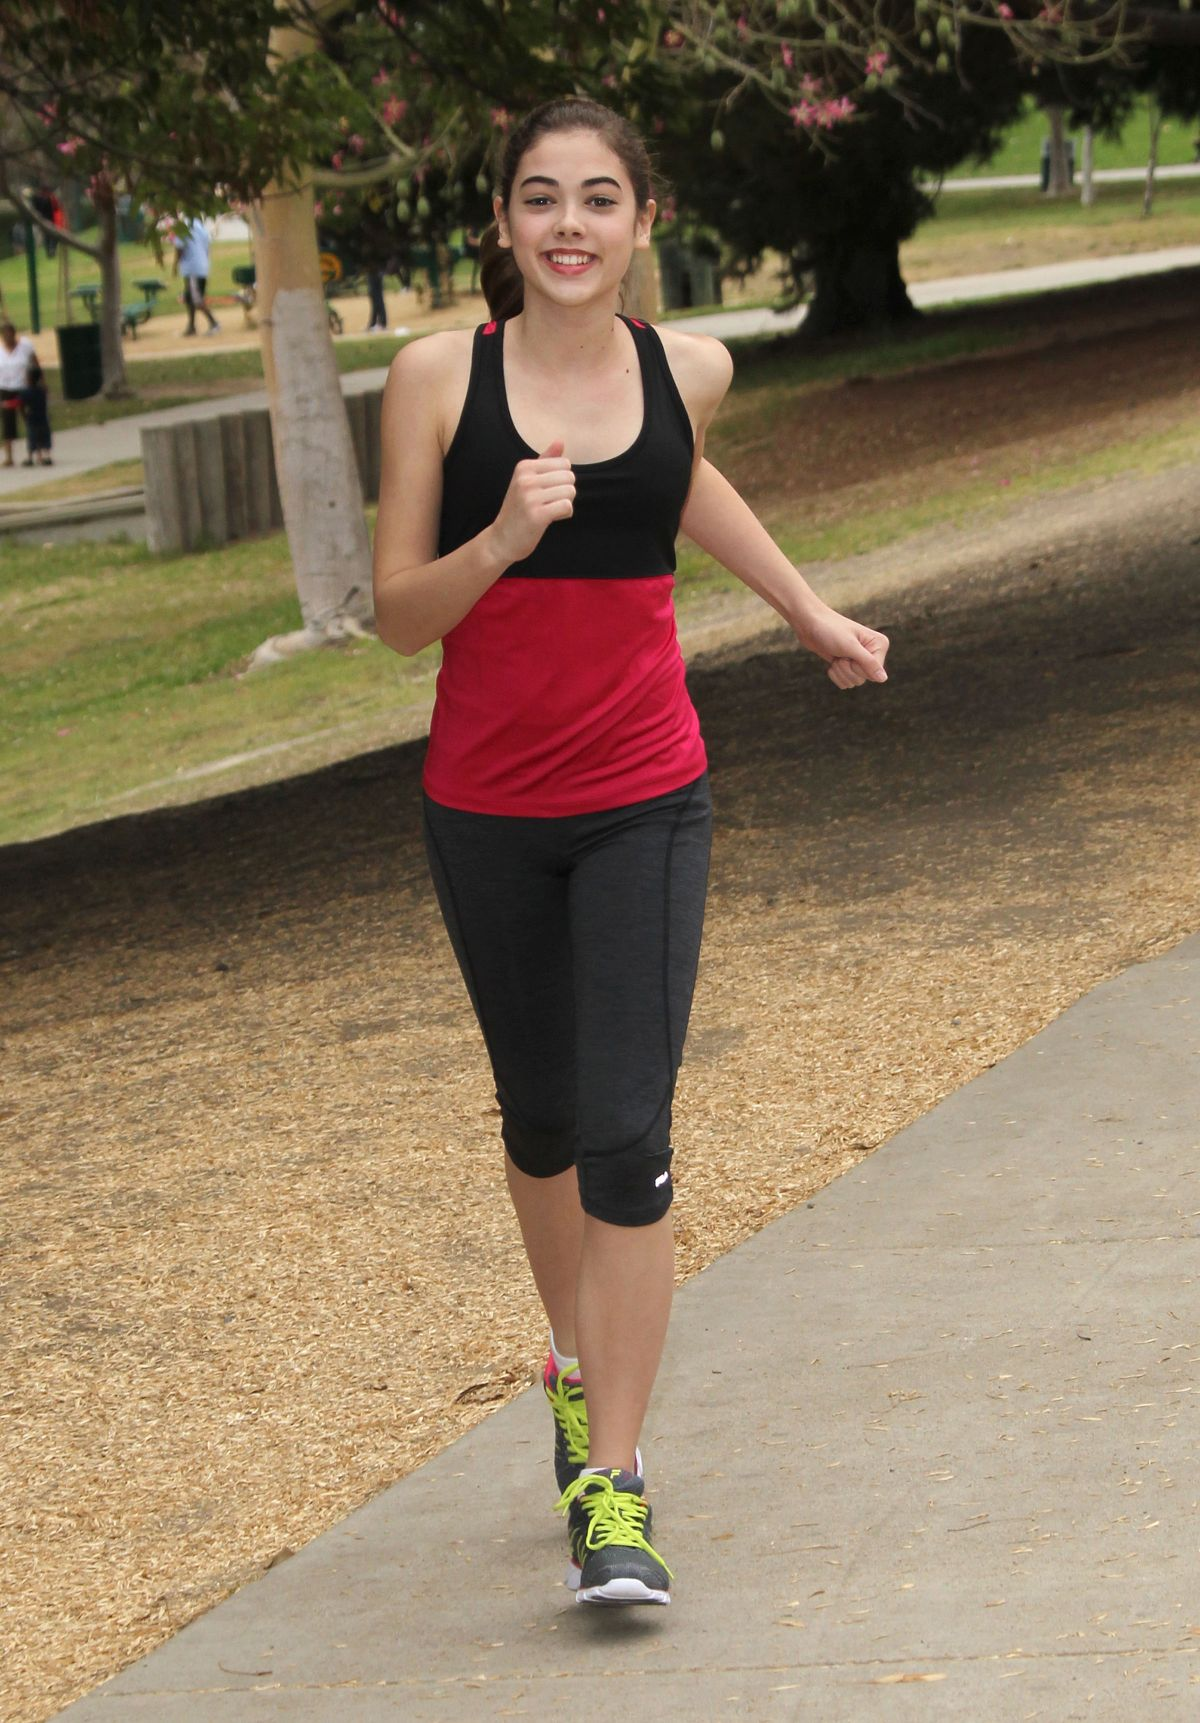 MCKALEY MILLER Out Exercising at a Park in Los Angeles